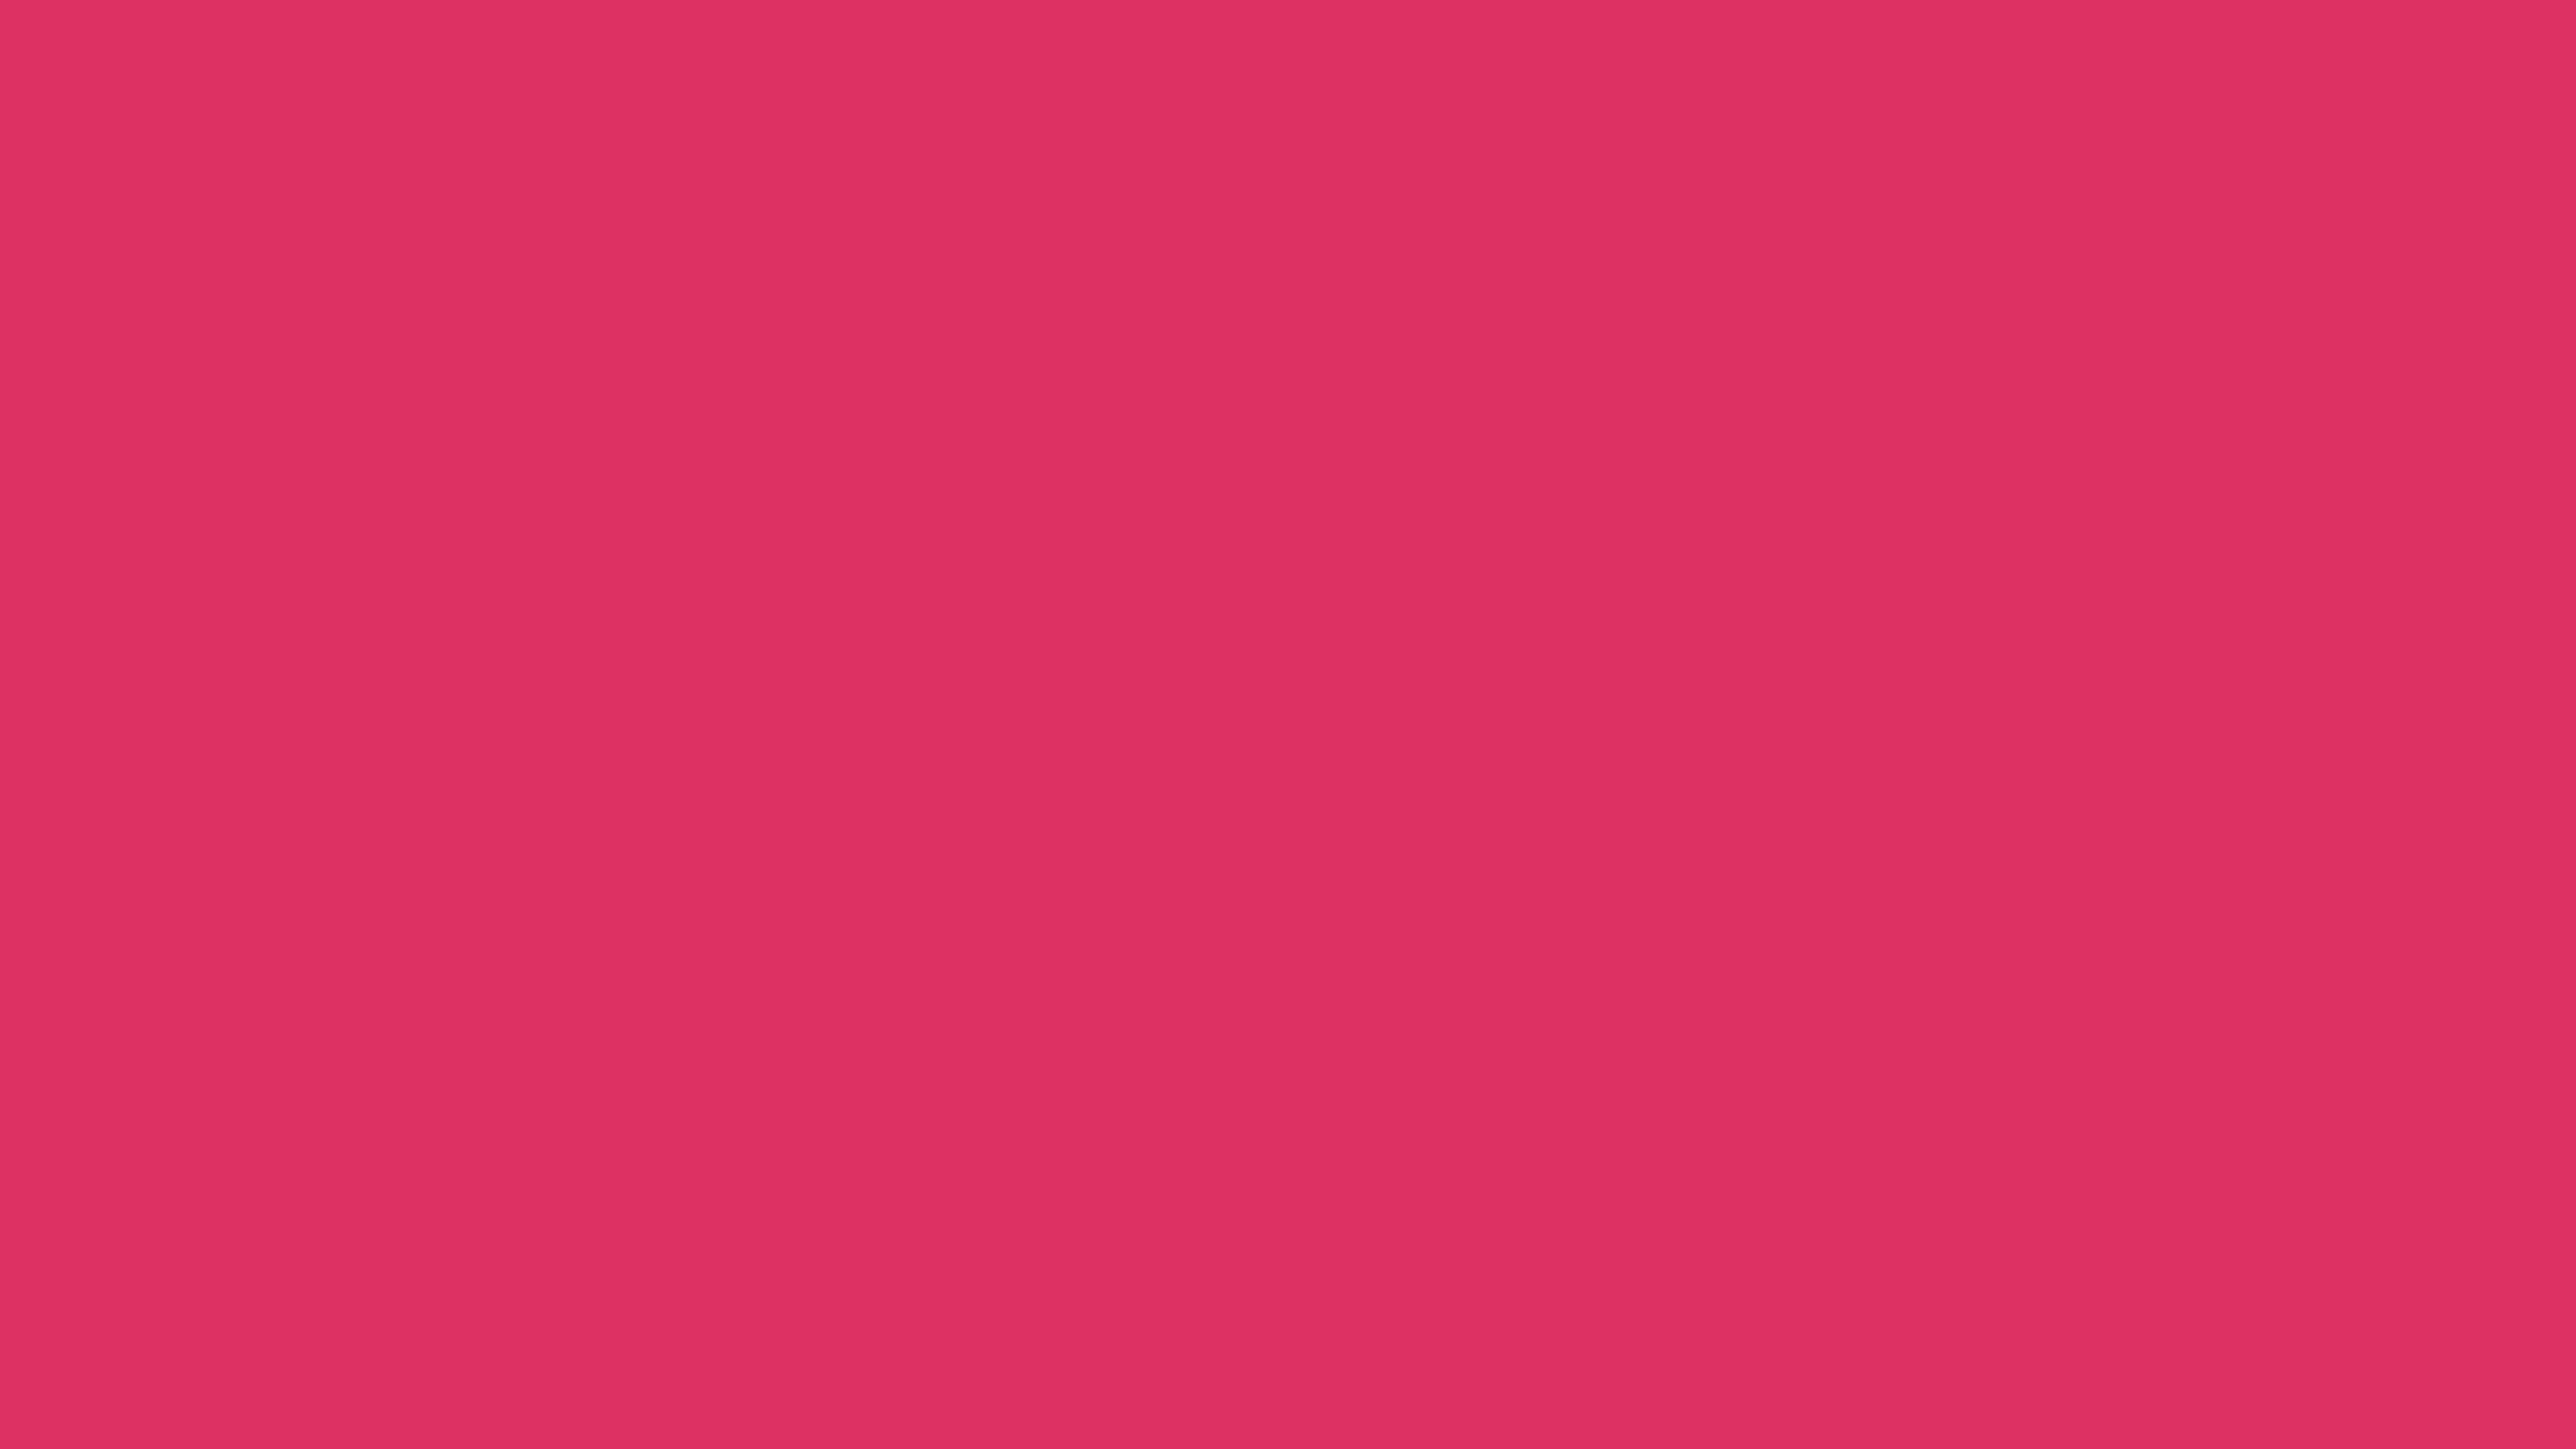 5120x2880 Cherry Solid Color Background